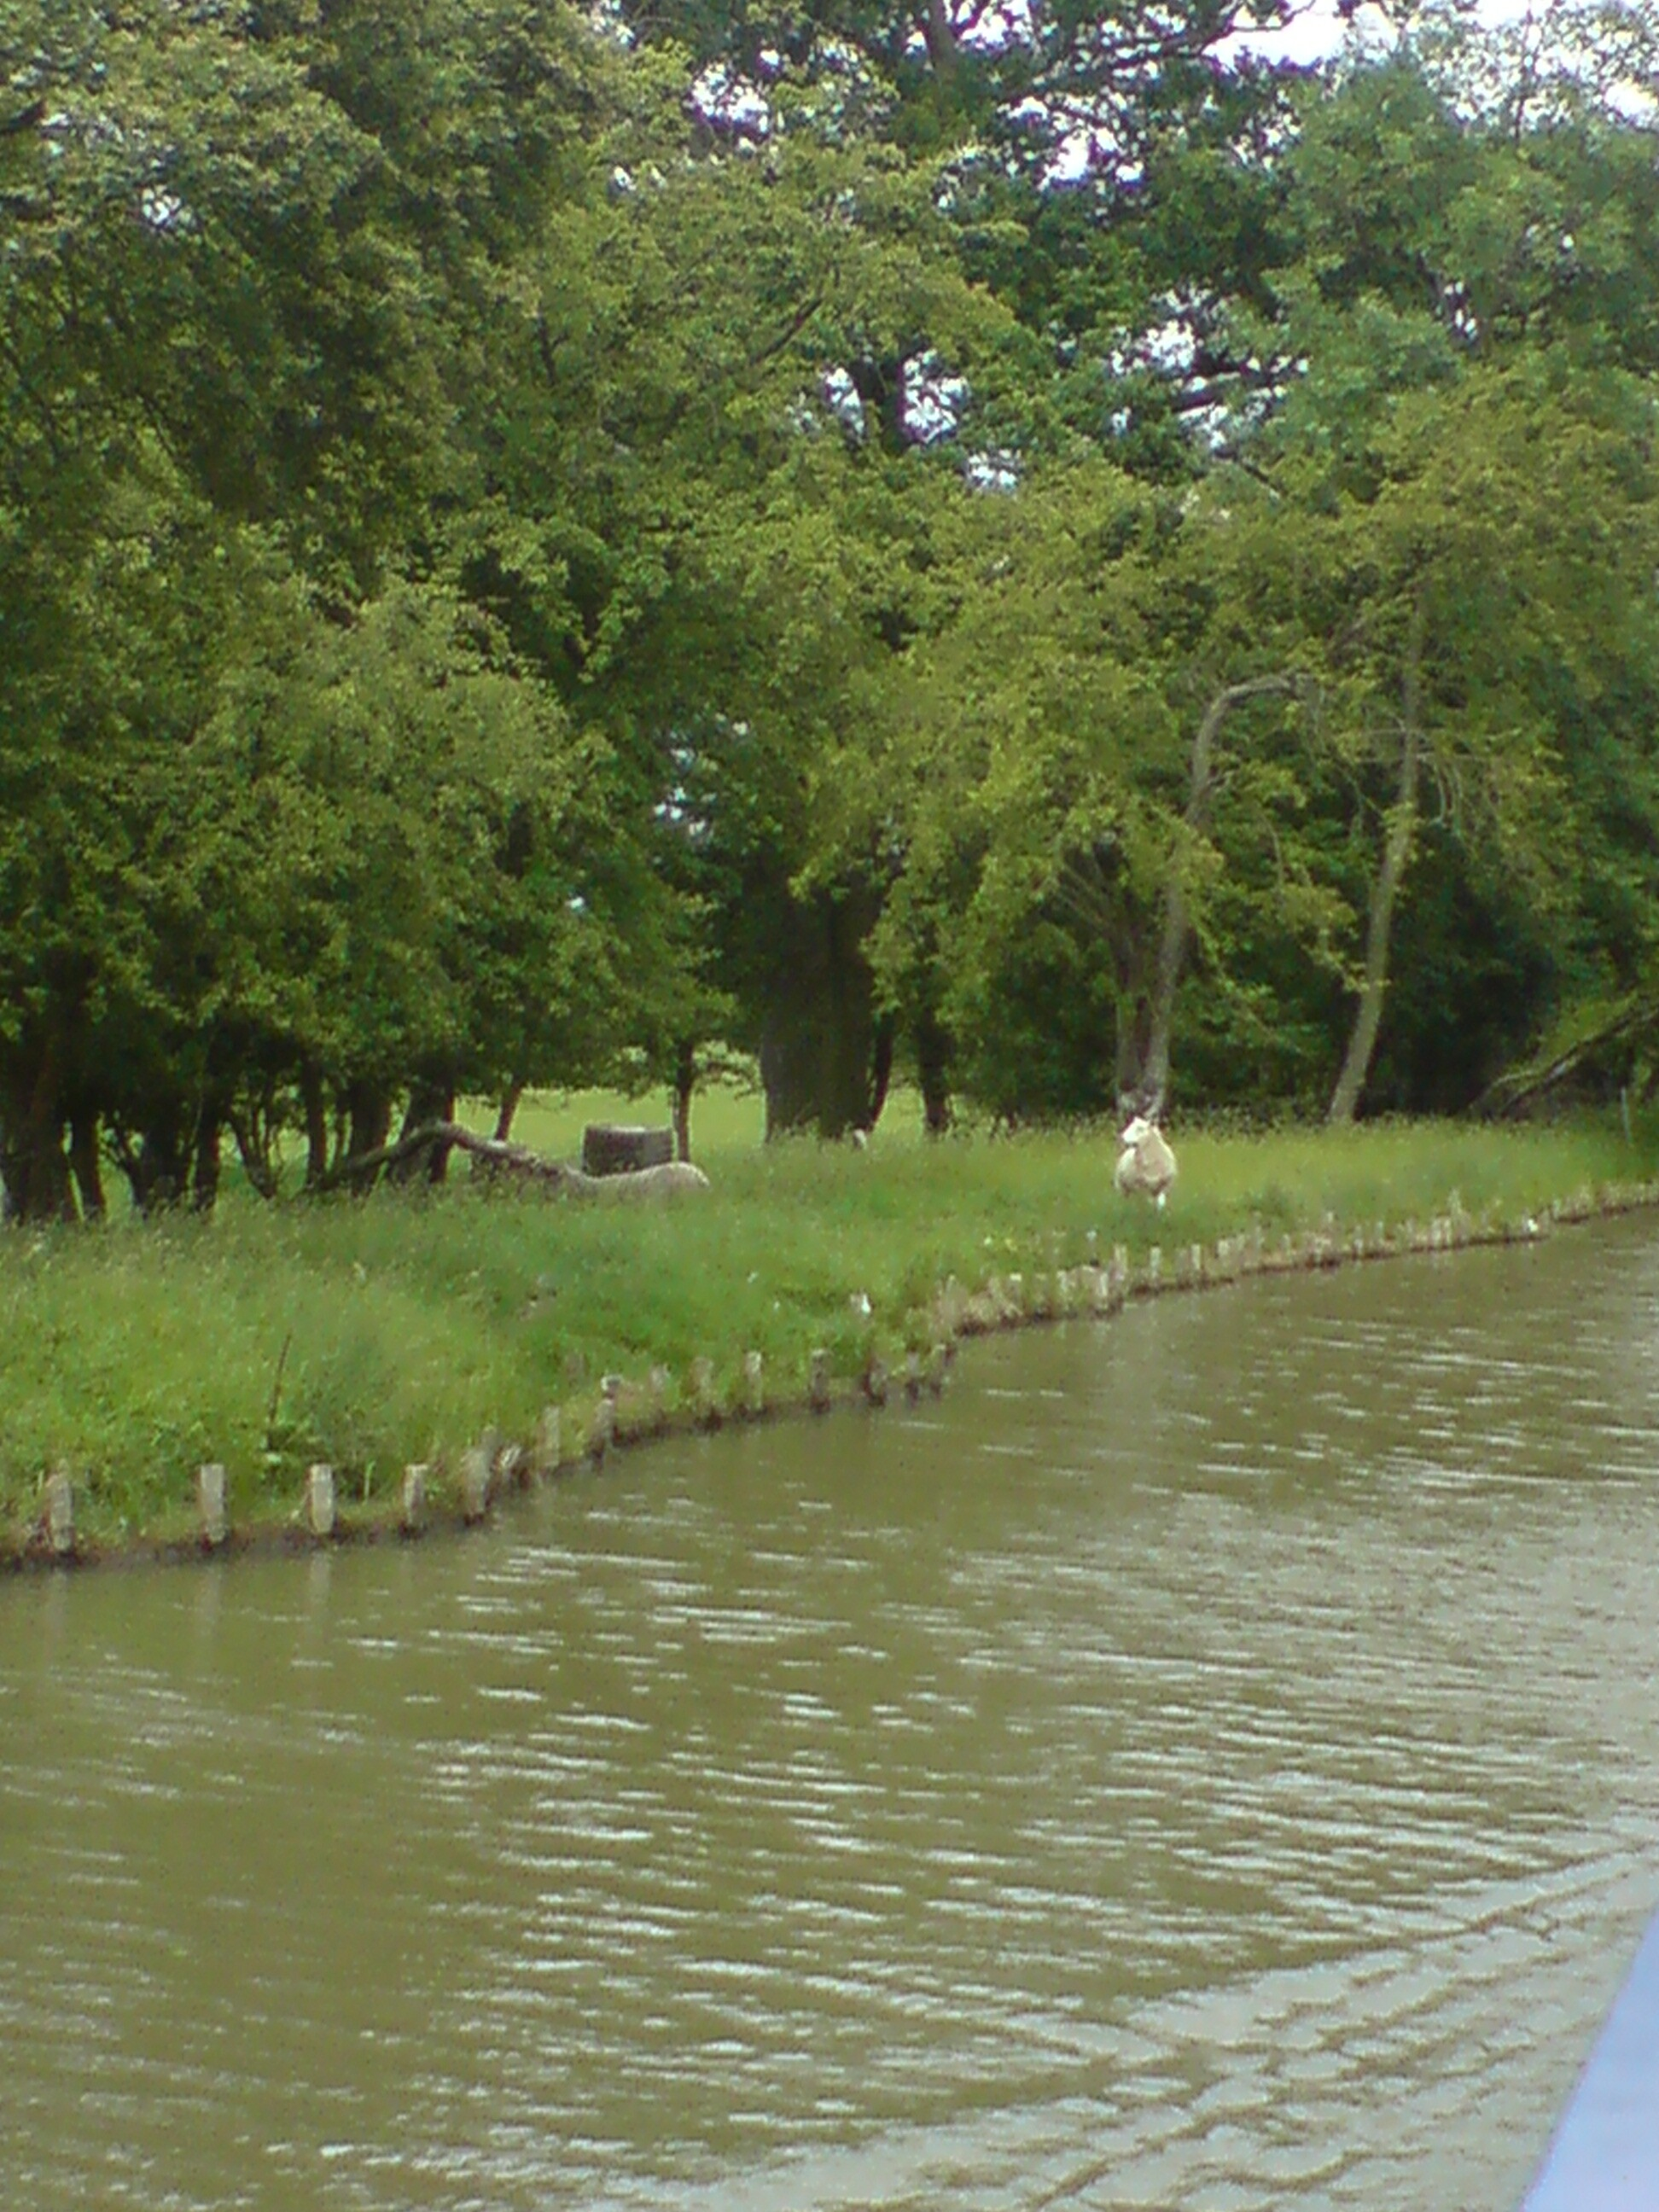 The grass is always greener - sheep peering over to the towpath side....